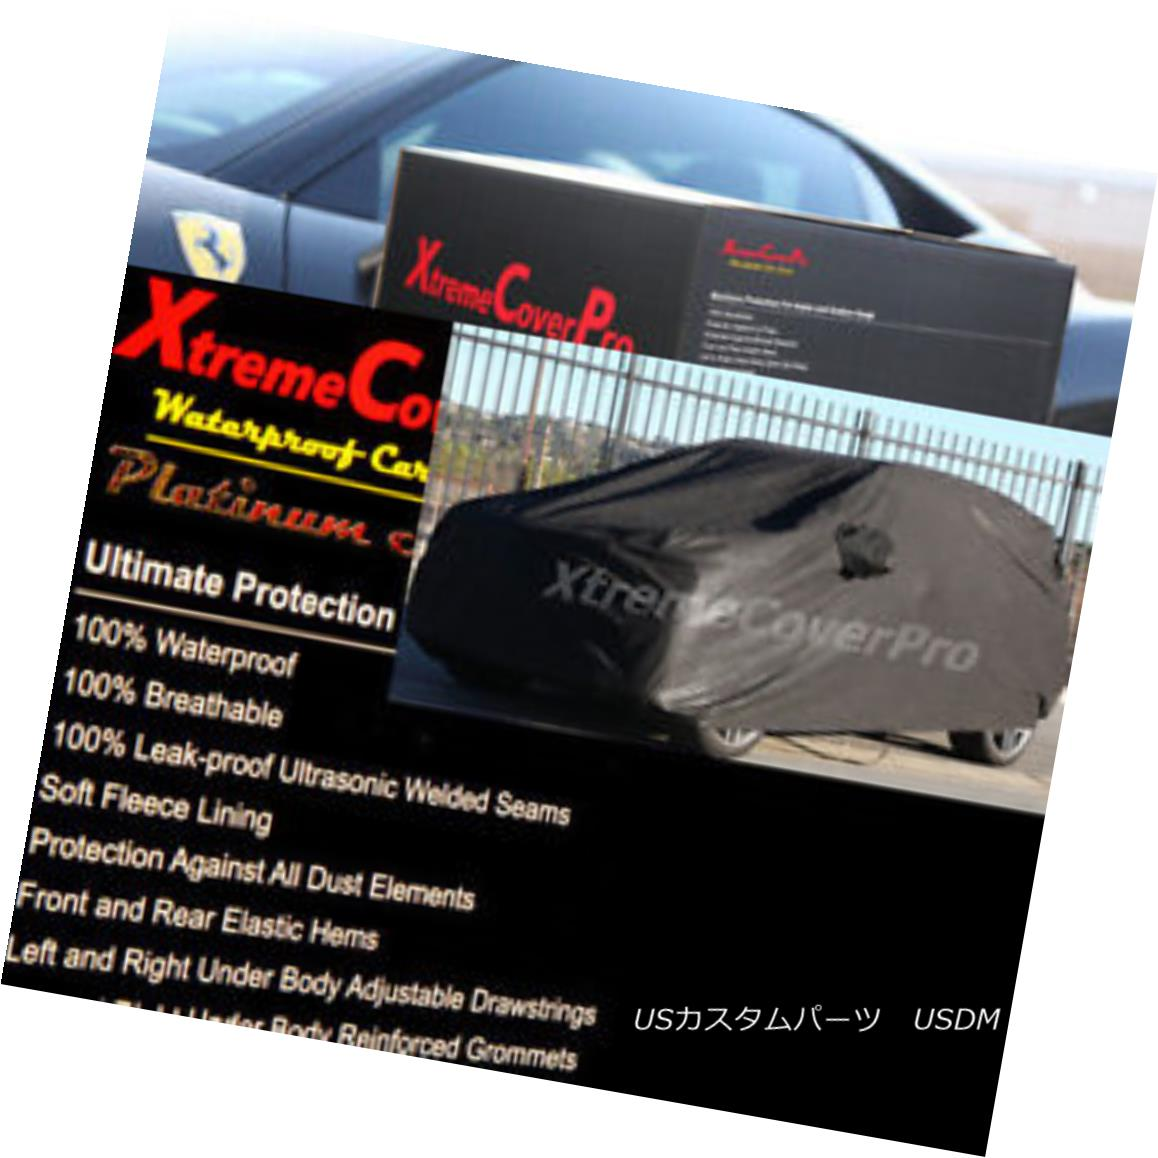 2015 MKX防水カーカバー付き/ミラーポケット LINCOLN カーカバー MKX ブラック Car Cover Black w/Mirror LINCOLN Pockets - - 2015 Waterproof